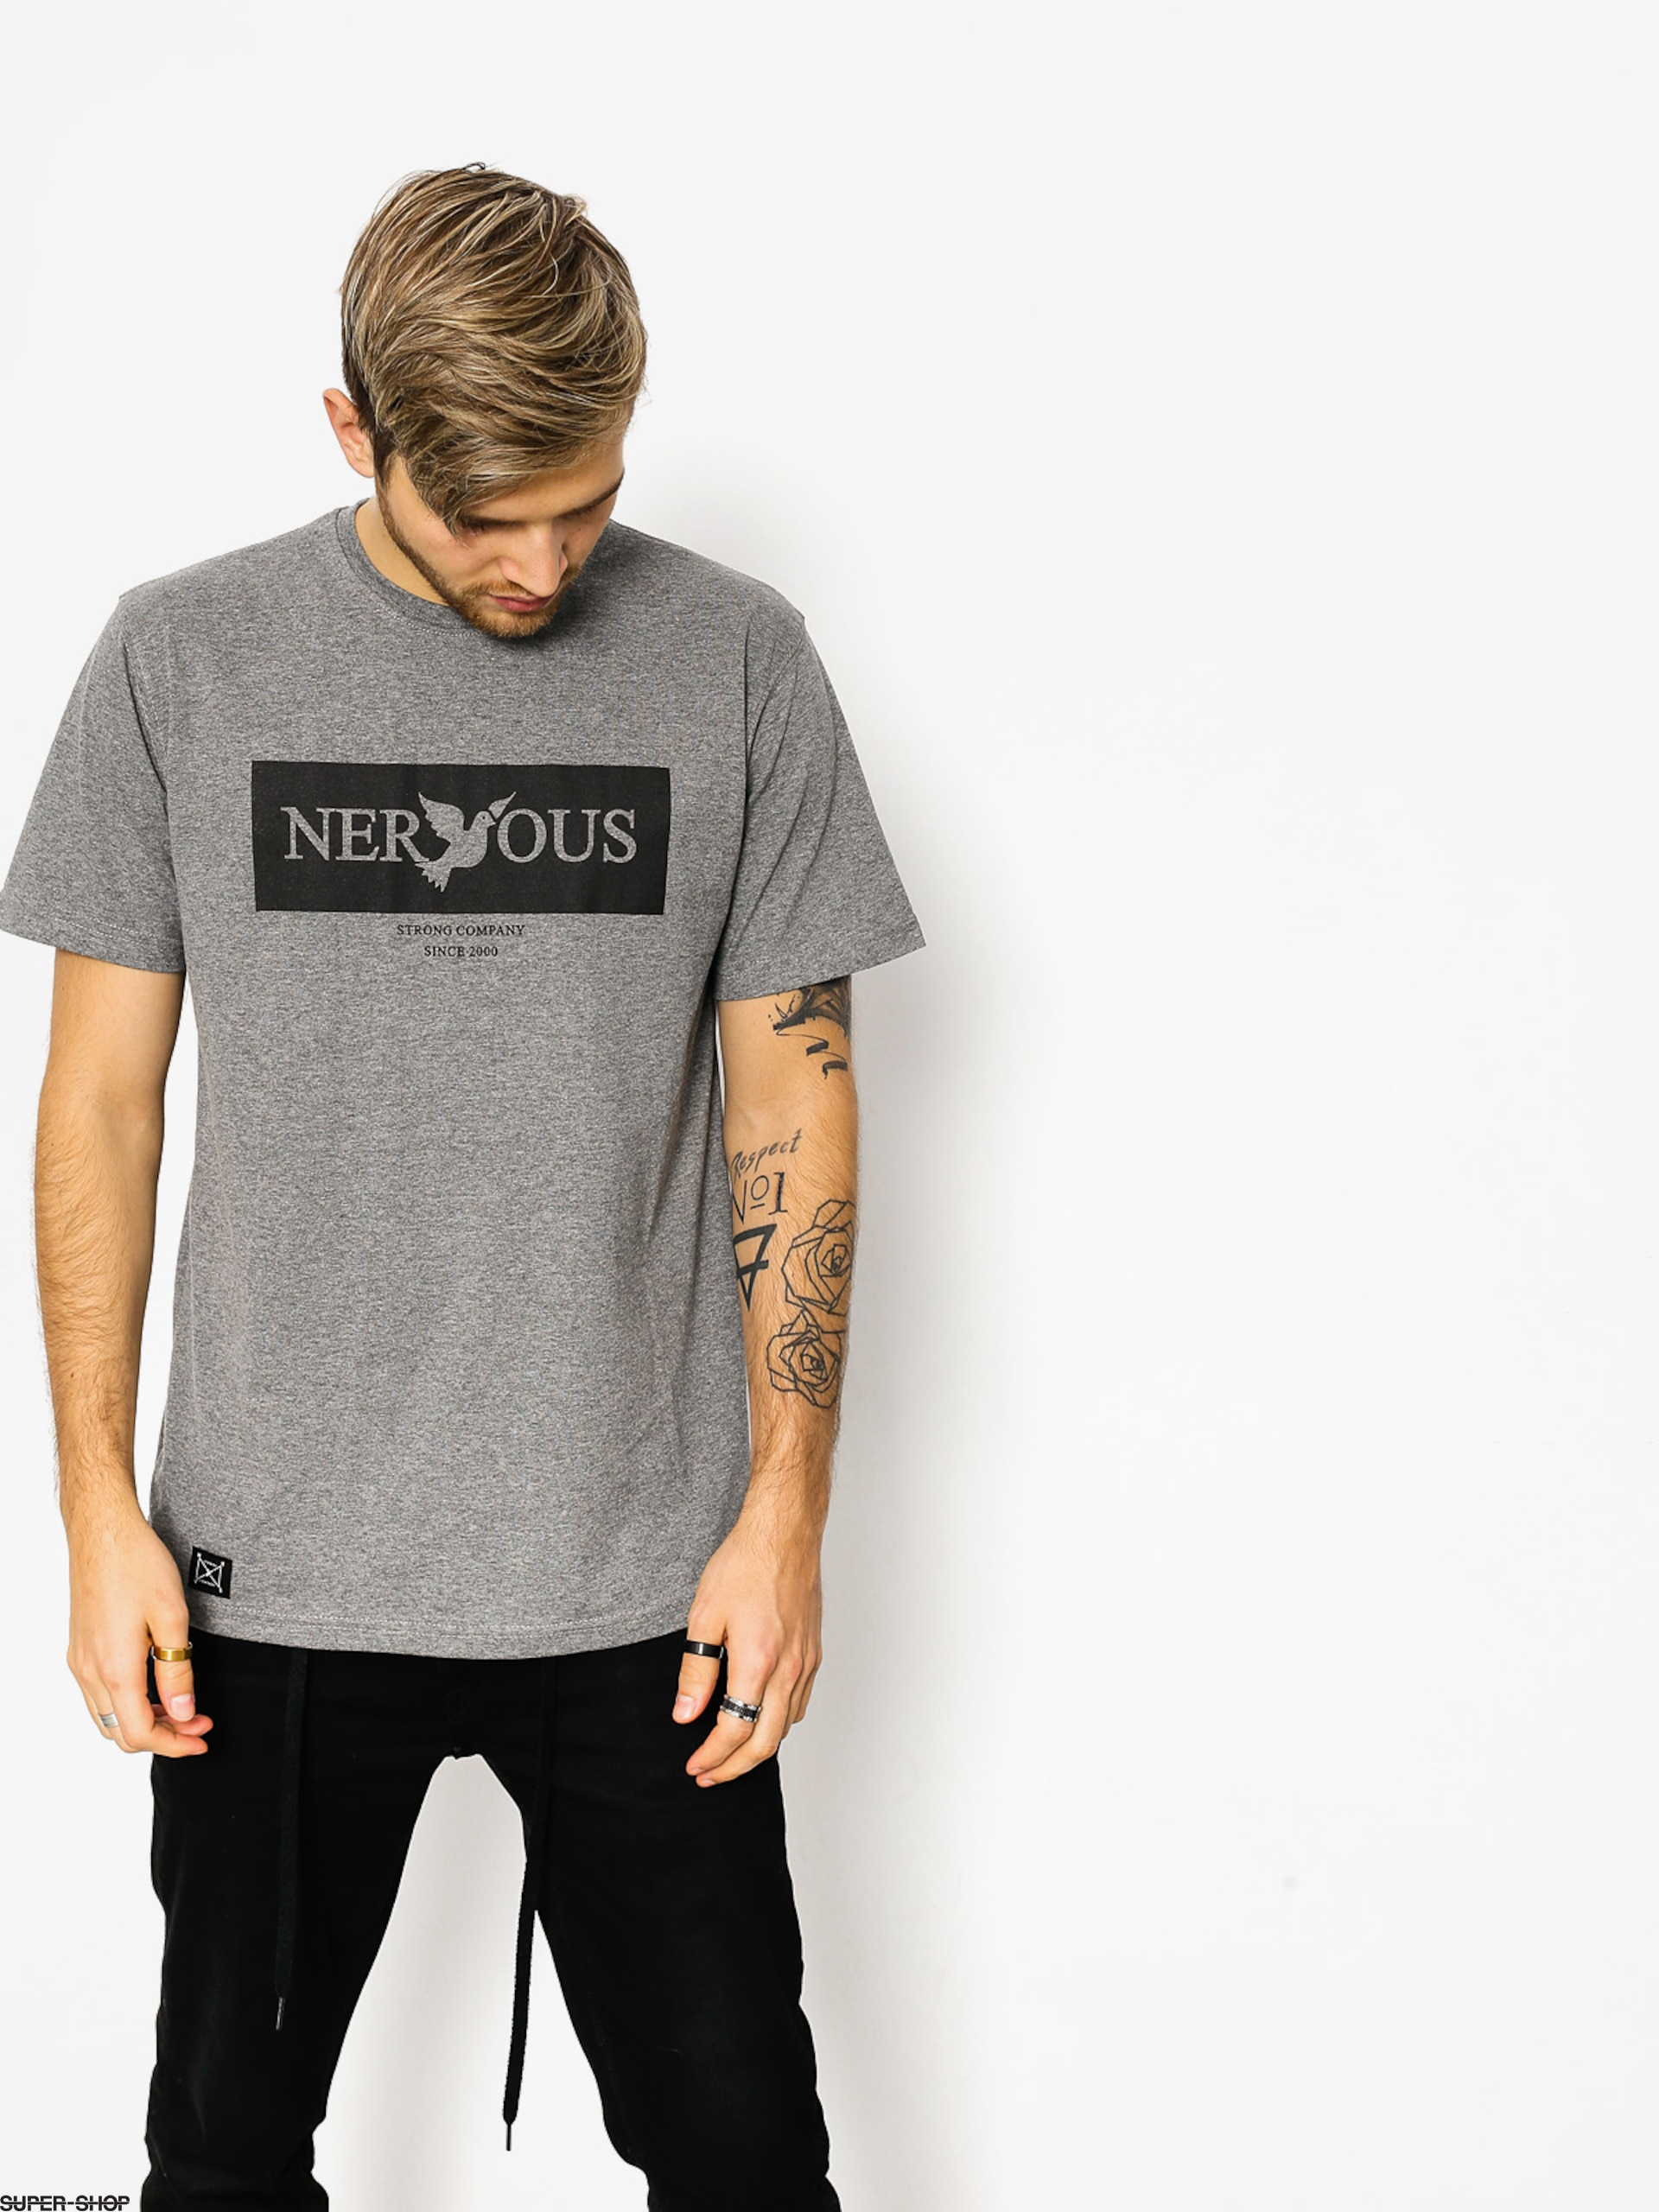 Nervous T-shirt Brand Box